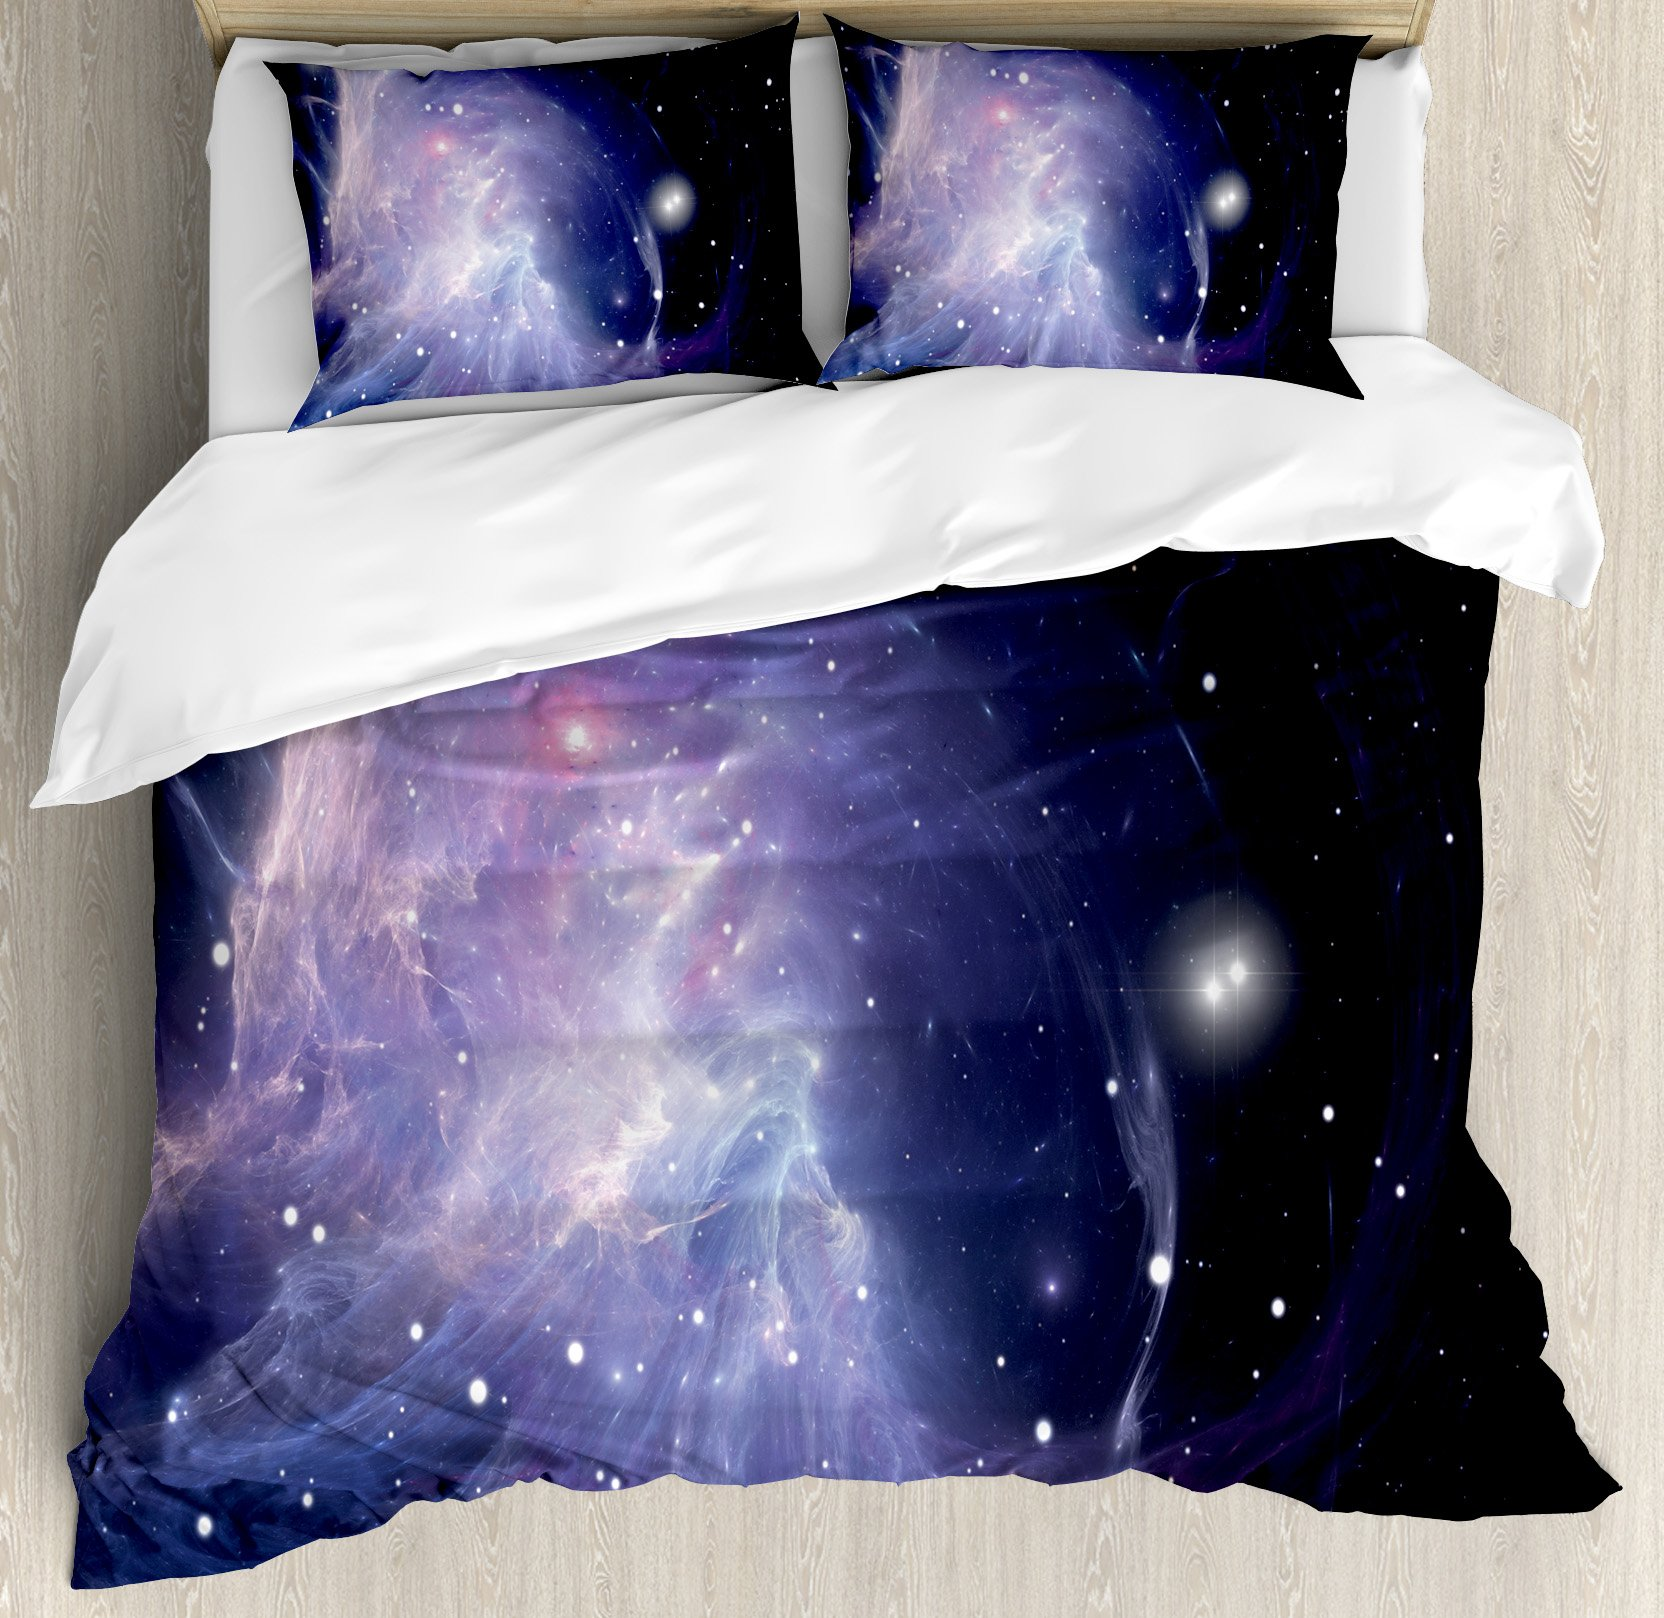 Ambesonne Outer Space Duvet Cover Set Queen Size, Space Nebula in Galaxy Complex Energy Movements Cosmos Theme Inspiring Print, Decorative 3 Piece Bedding Set with 2 Pillow Shams, Navy Purple